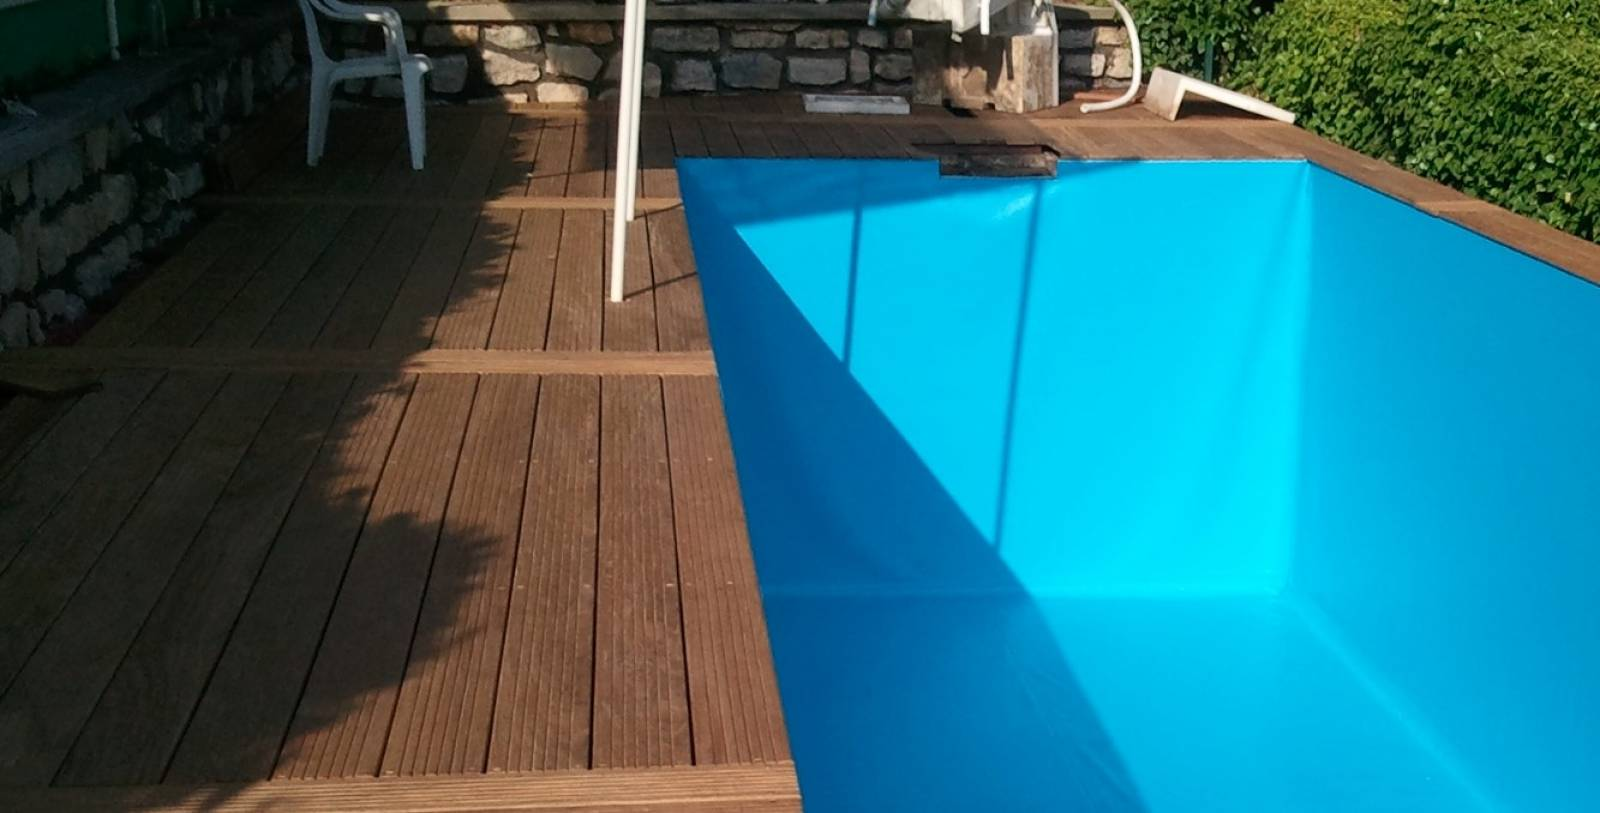 Pose de pvc arm jce piscines for Piscine en pvc arme